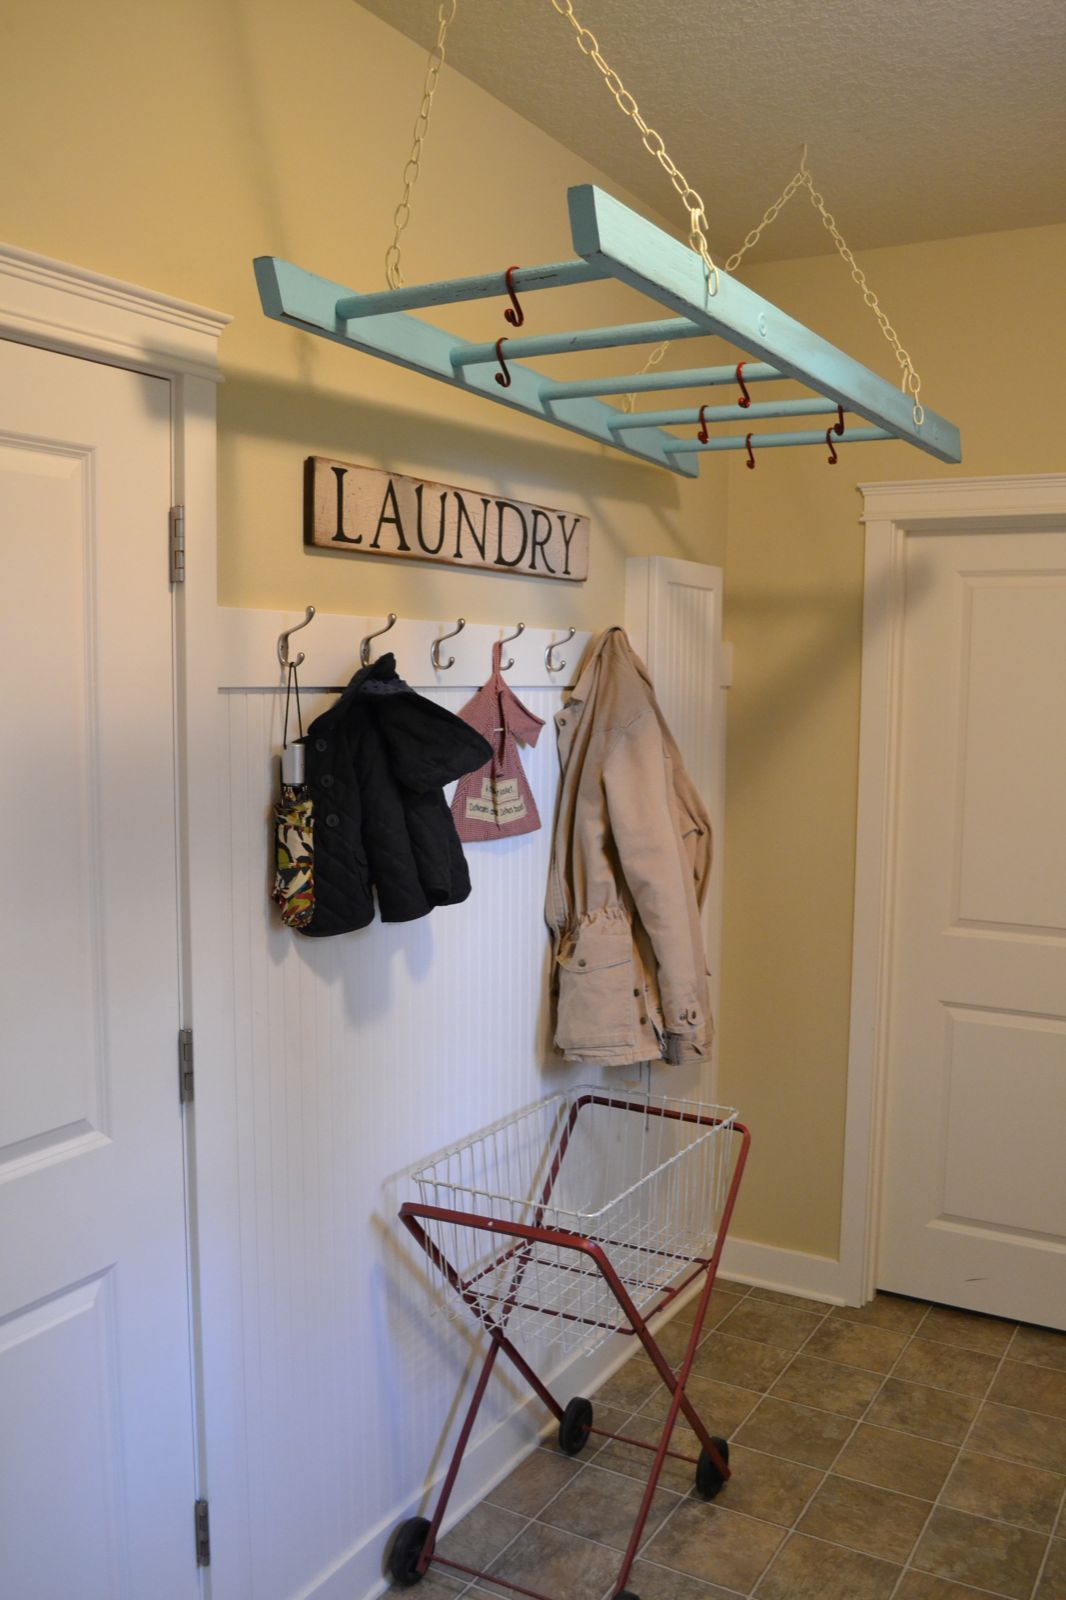 Hanging laundry rack made from an old